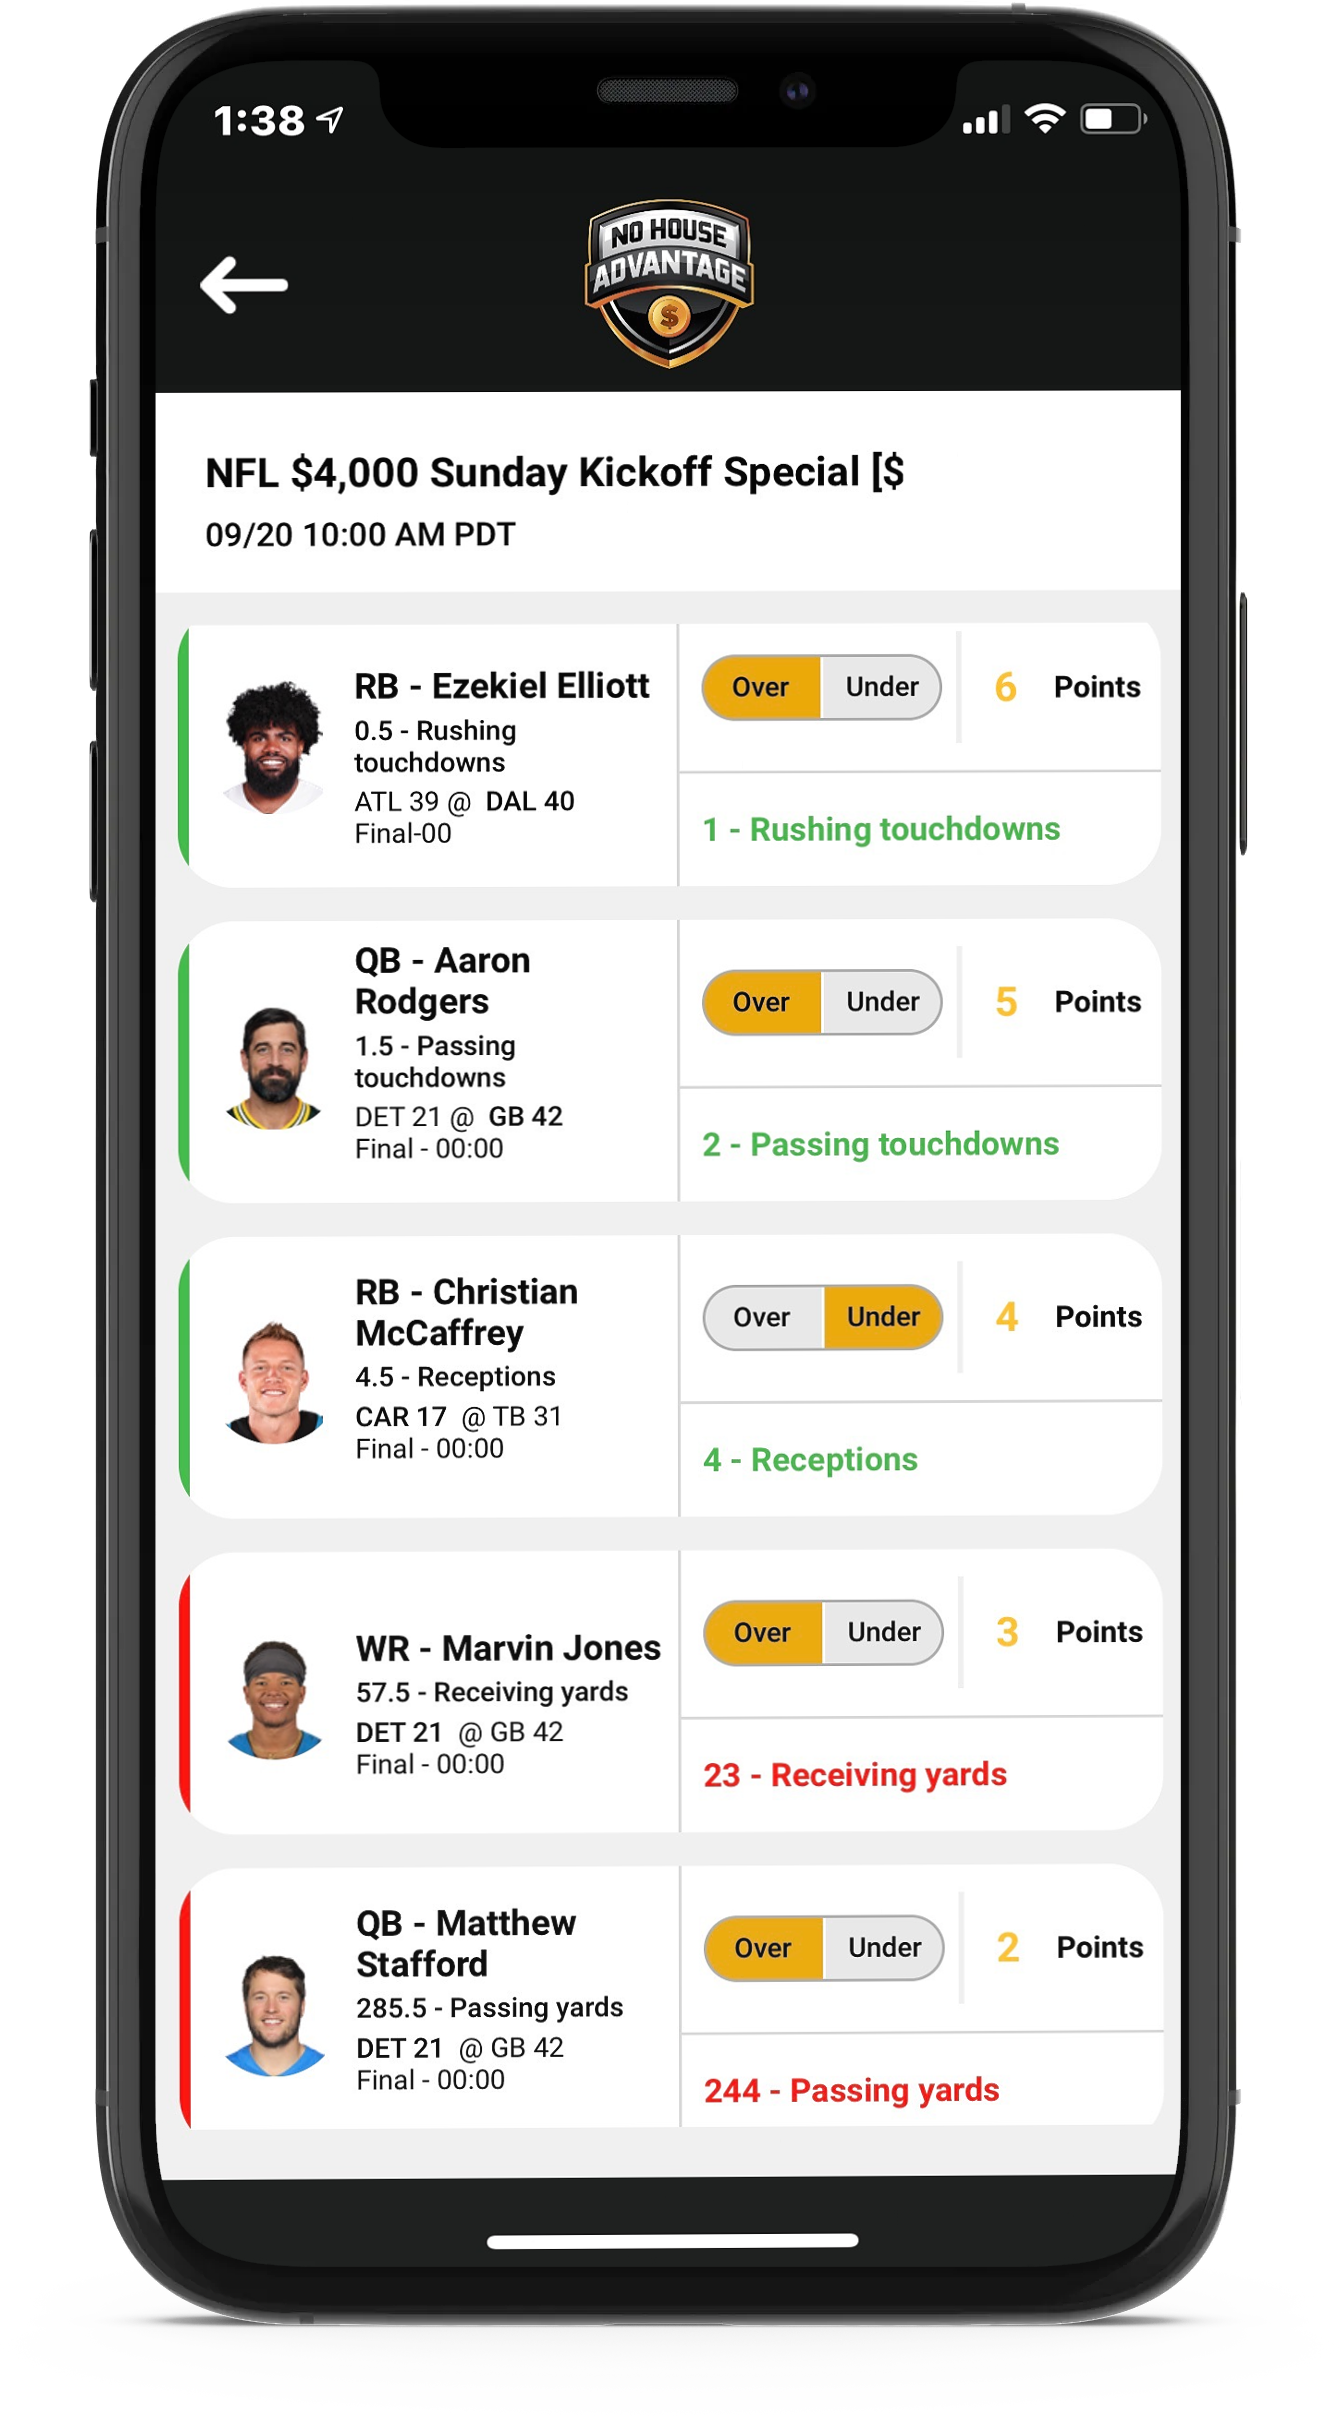 We give everyday sports fans the chance to win cash prizes by playing fantasy sports!